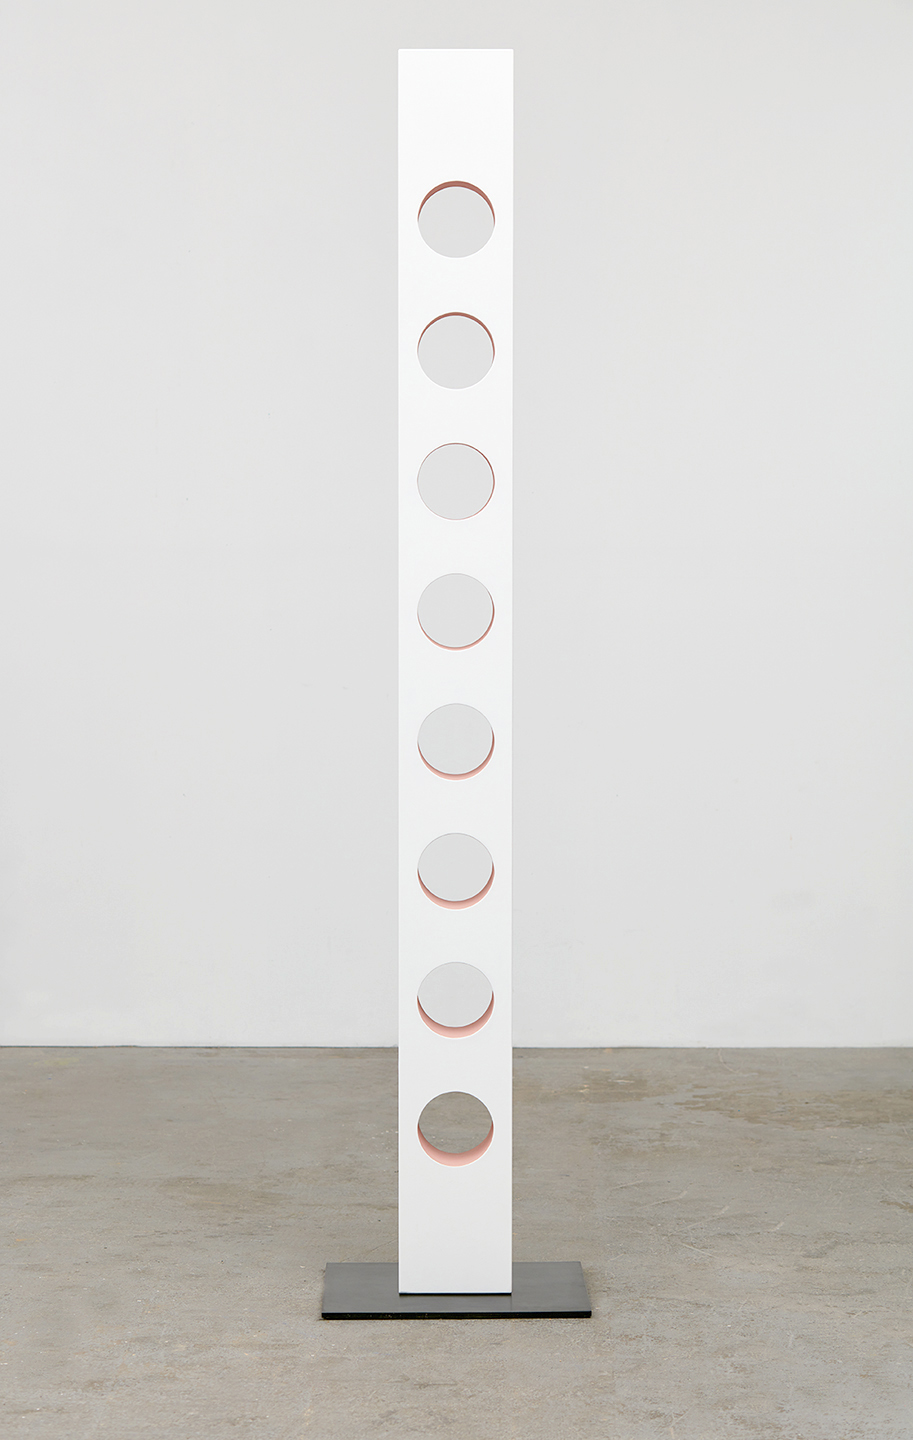 Lisa Williamson  Round Out Rubber Holes  2015 Acrylic on wood and steel base with black acid and wax finish 81 ½h x 7 ½w x 5d in; Base 17 ½h x 15w x ⅜d in LW171